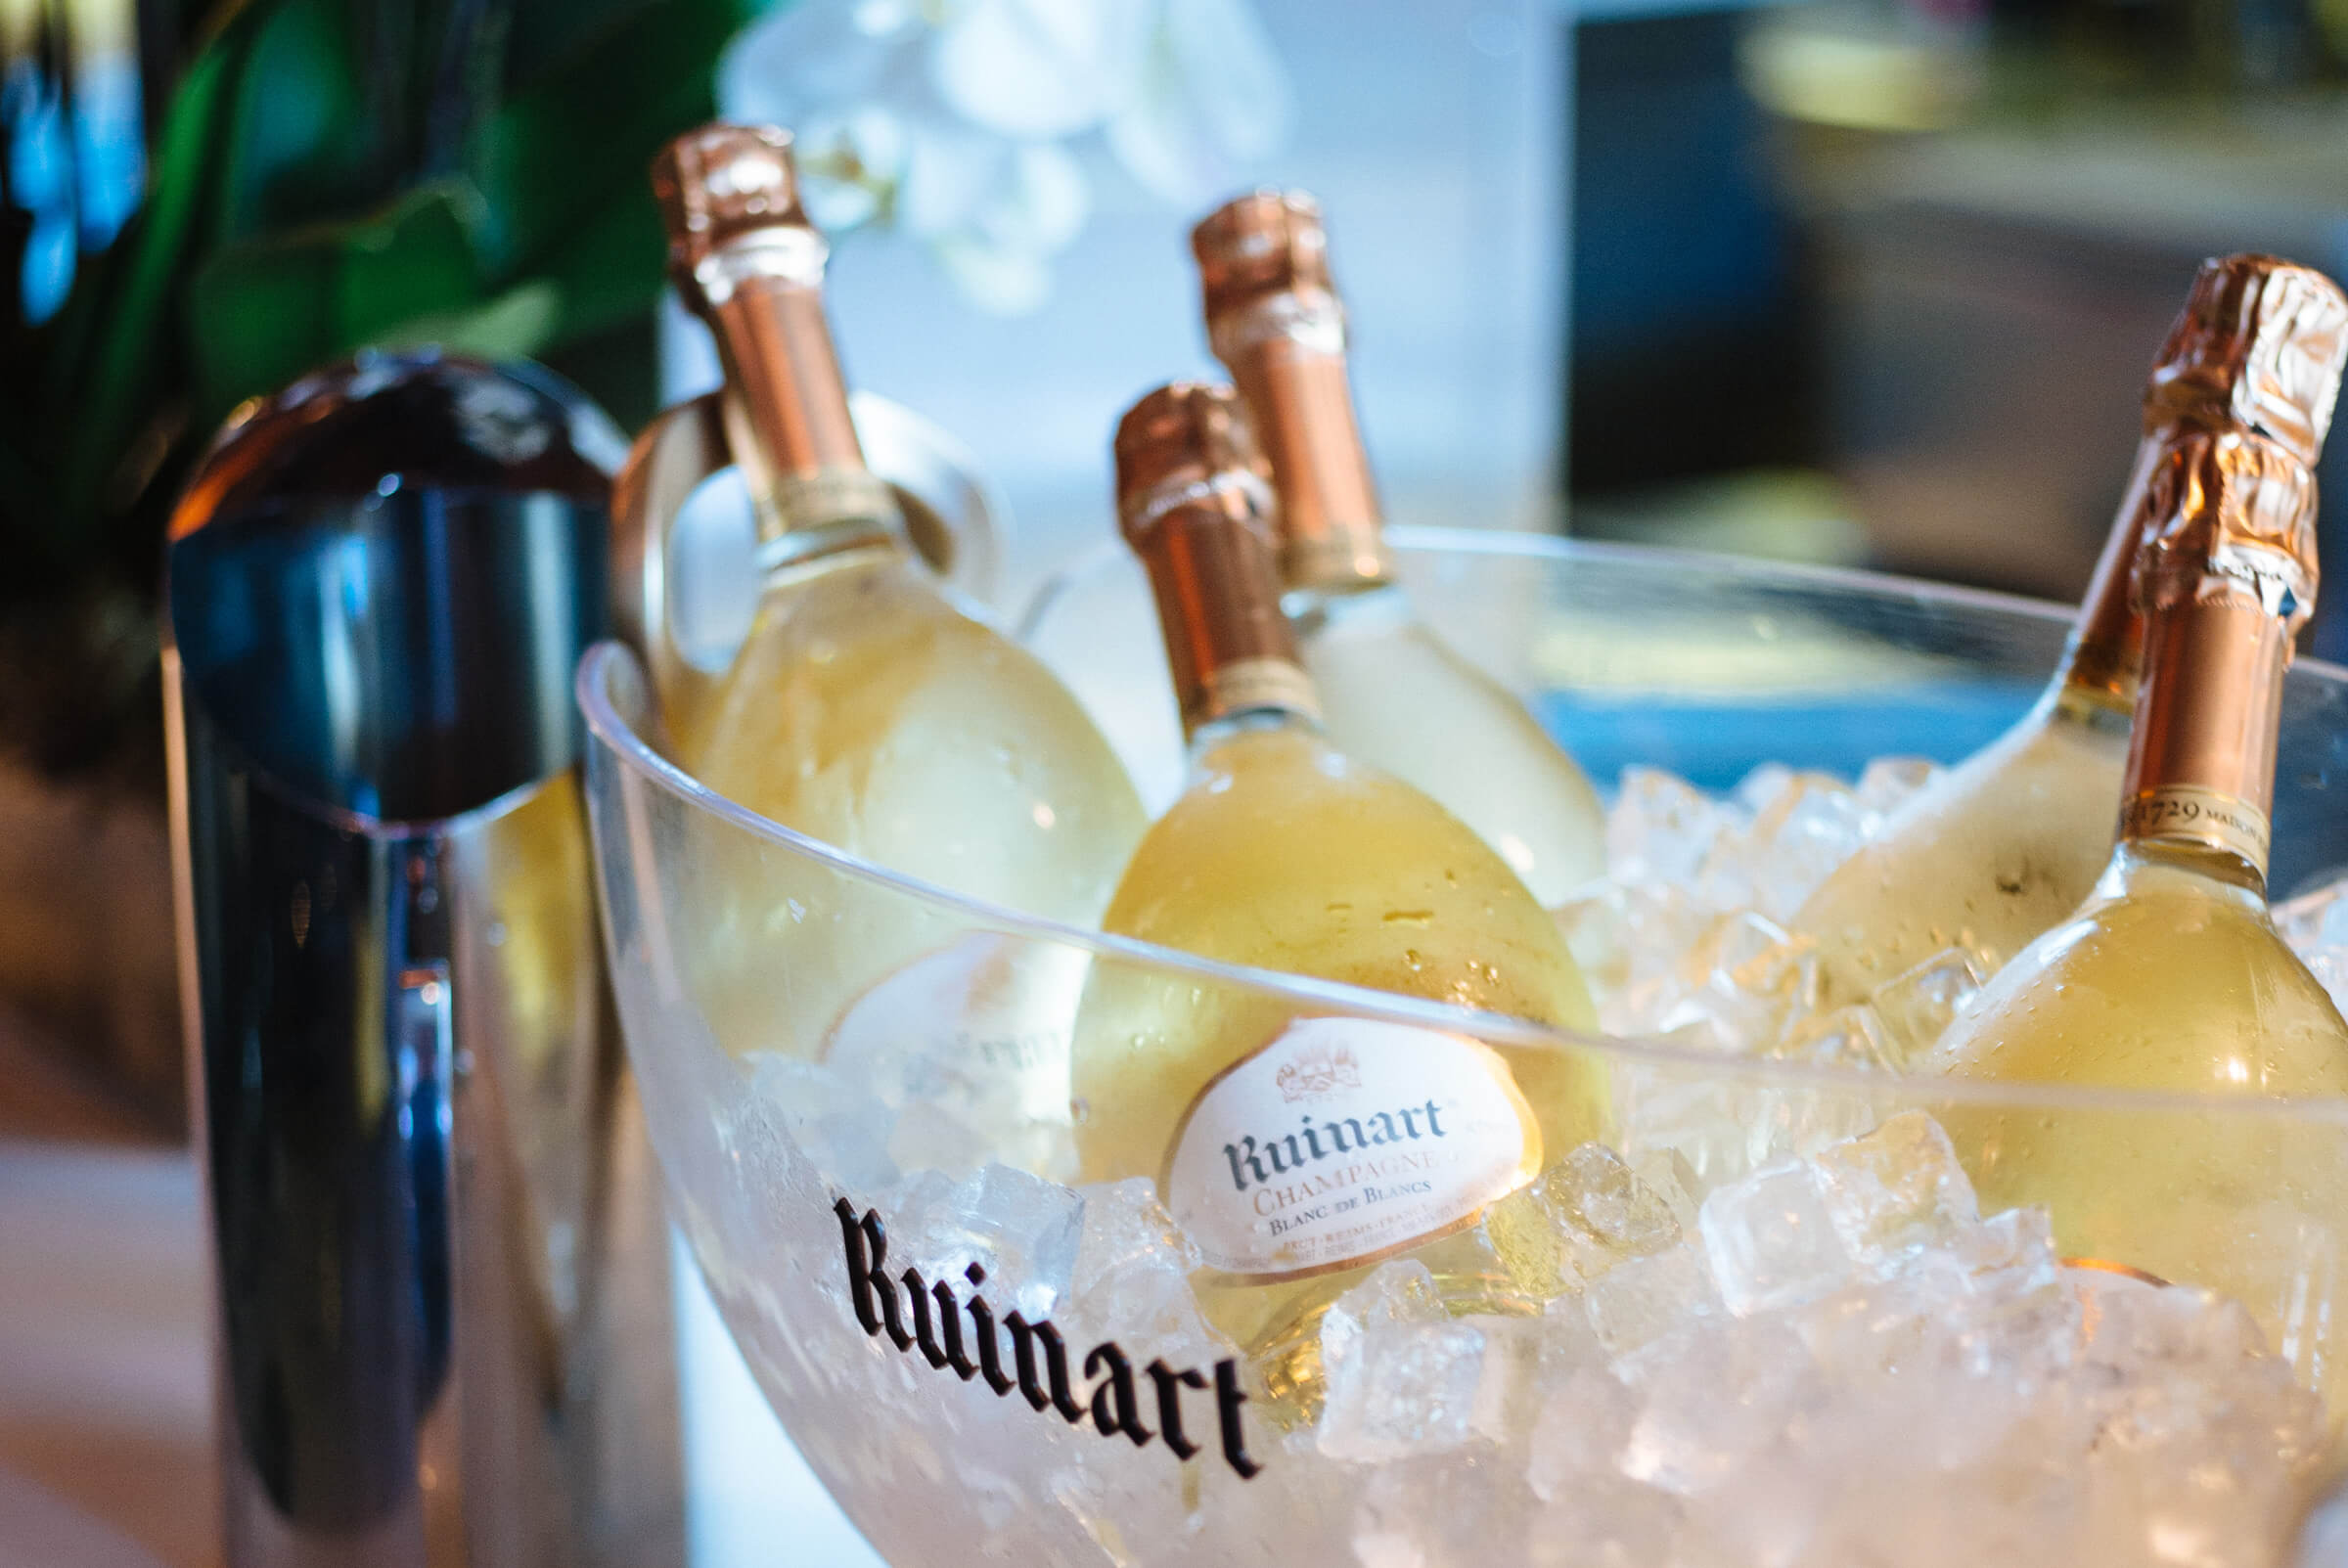 Ruinart champagne is a fabulous way to start a party